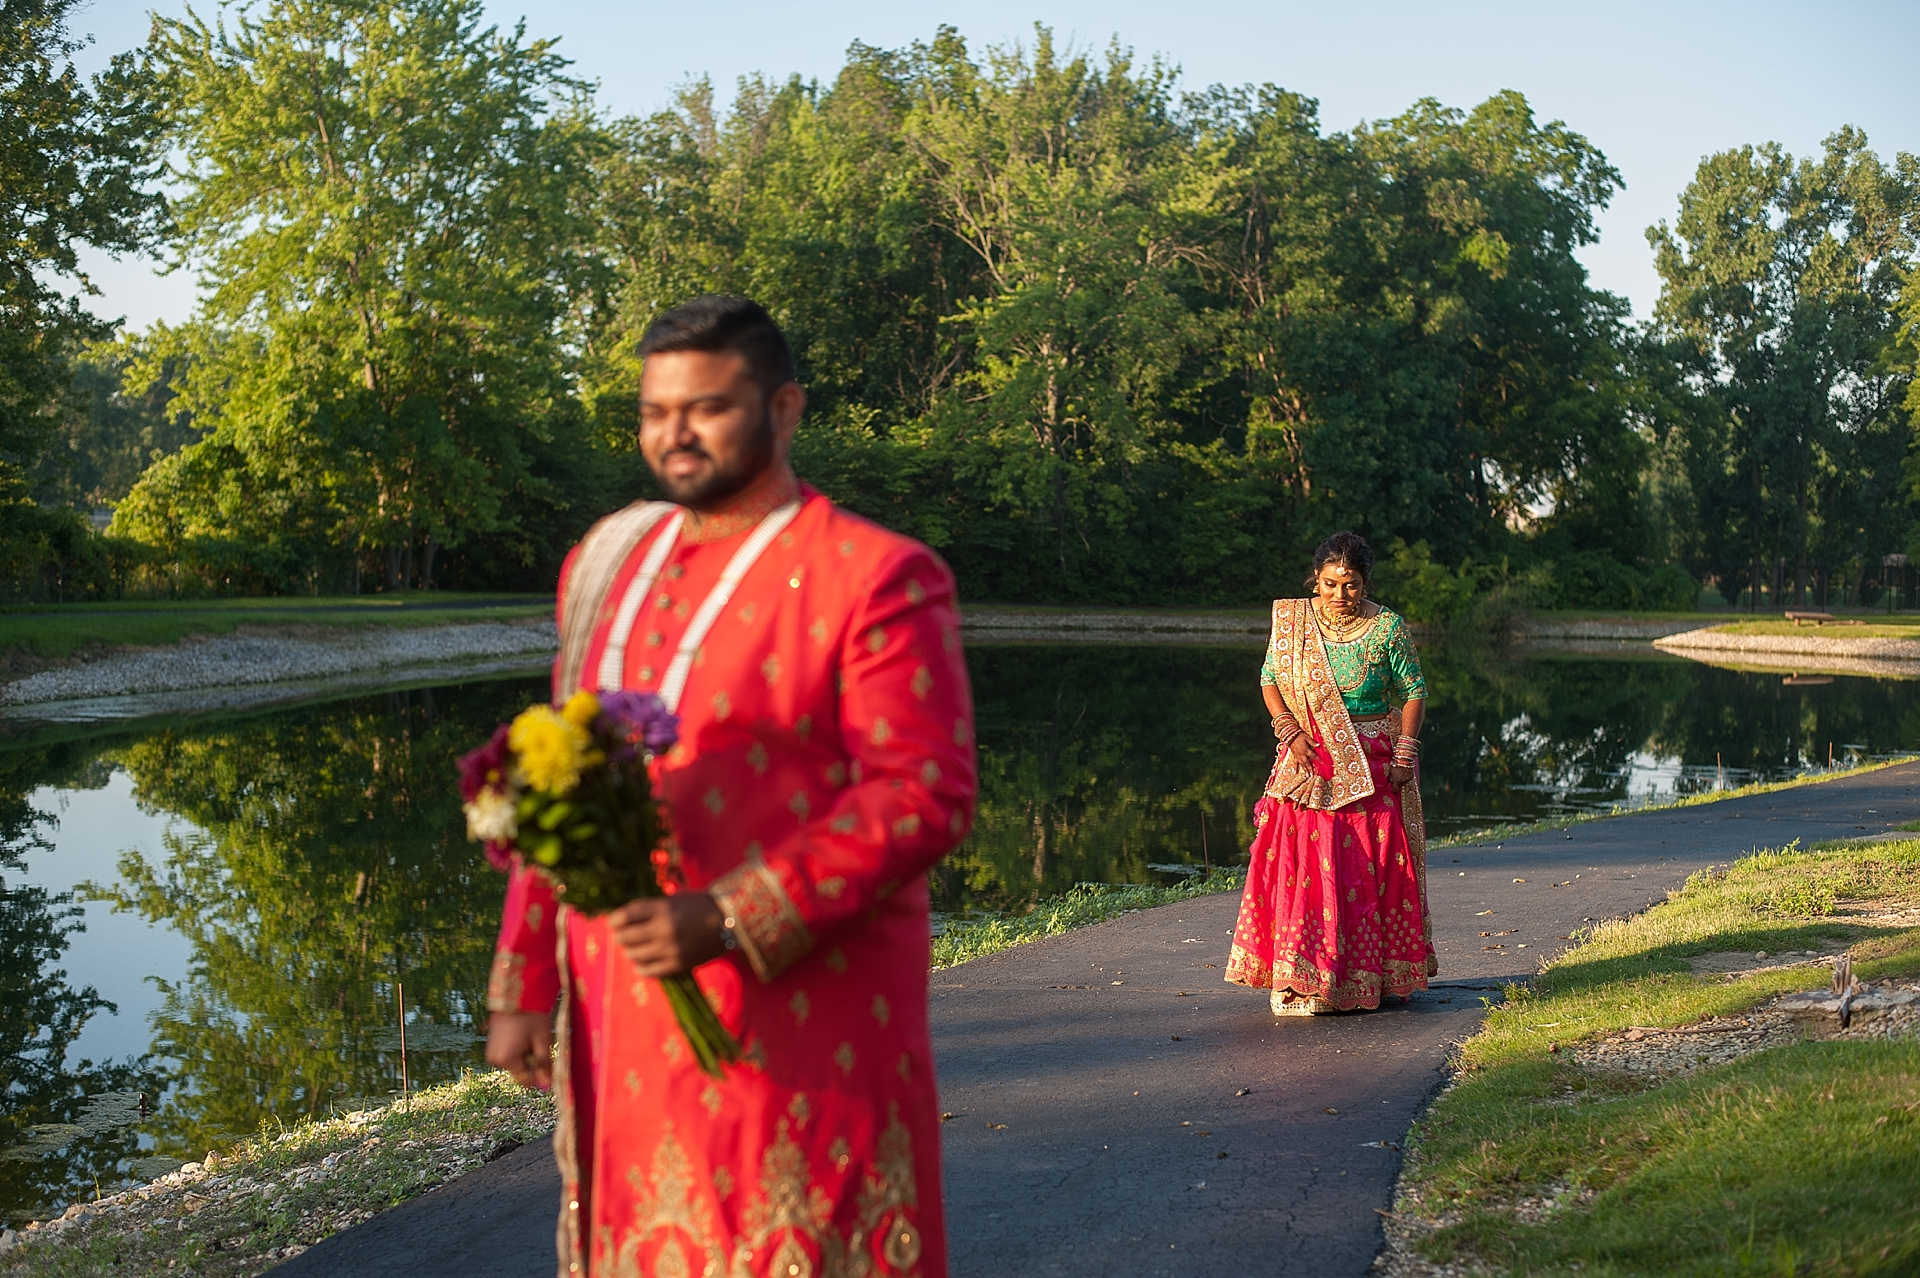 Prexa_Harry_Columbus_Crown_Plaza_Indian_Wedding0005.jpg